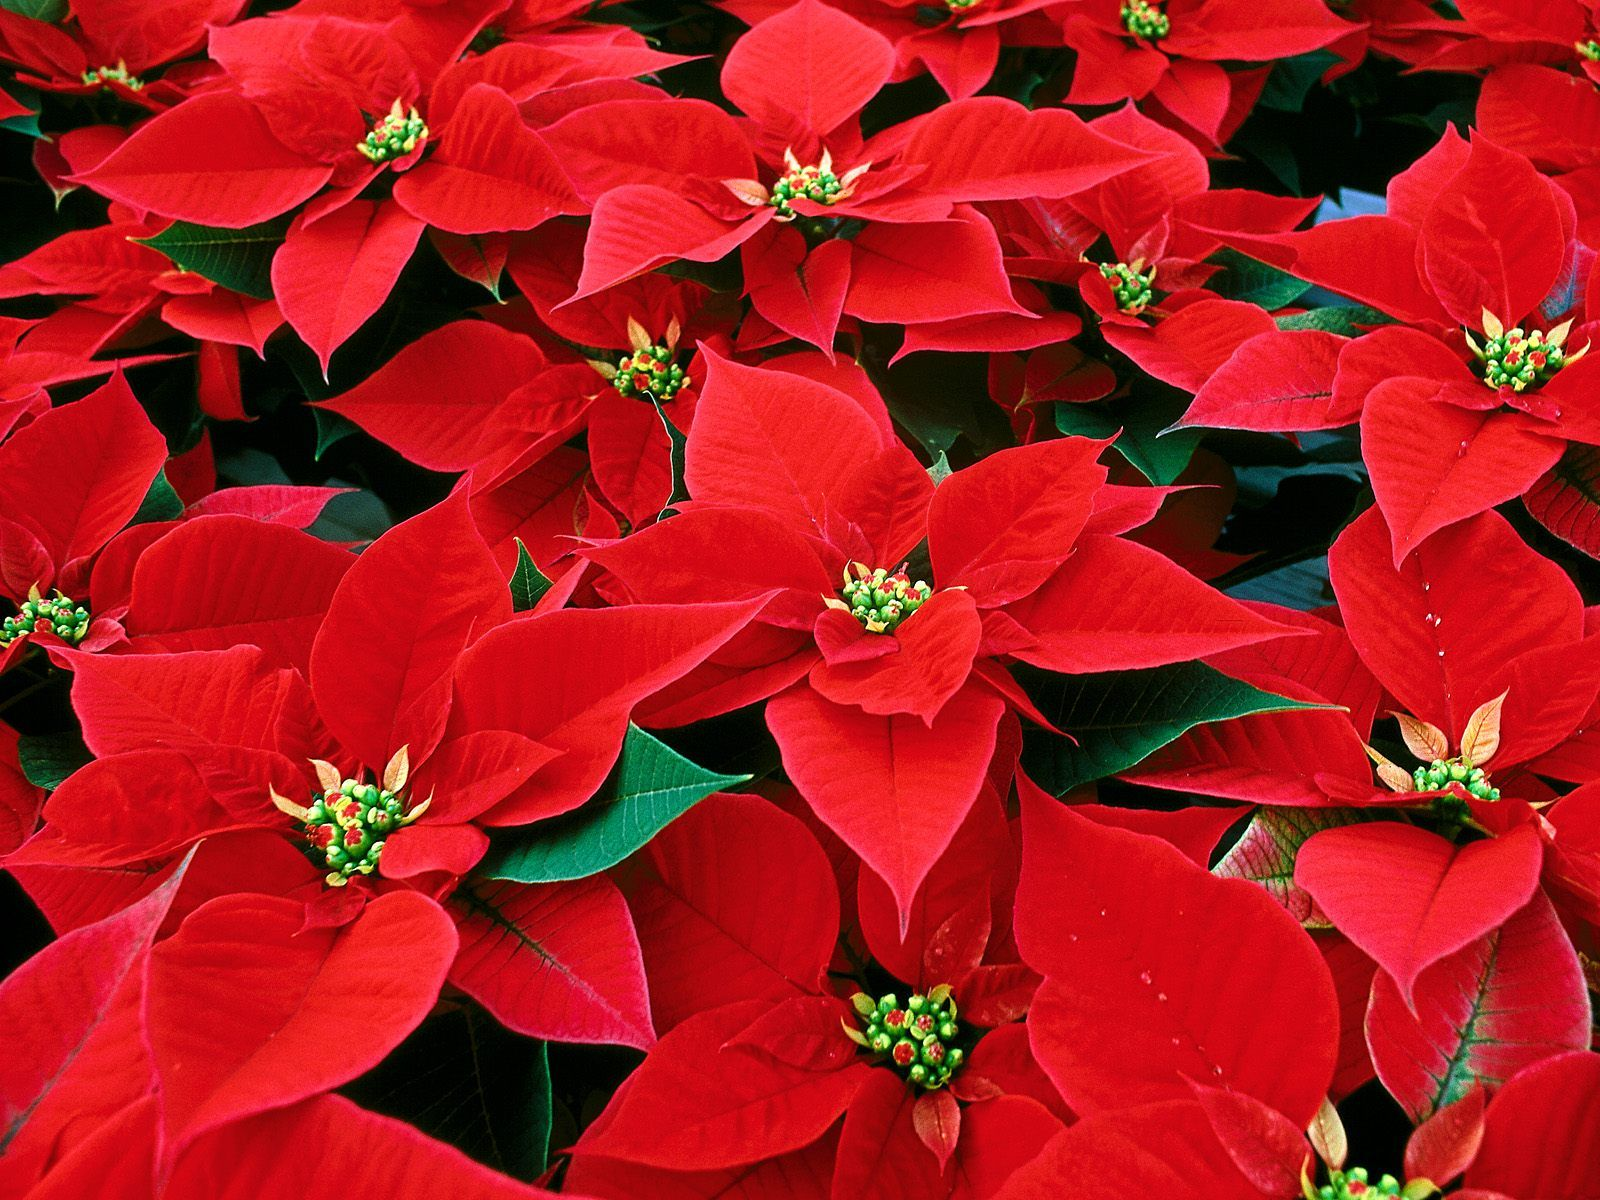 1600x1200 Best 33+ Poinsettia Wallpaper on HipWallpaper | Wallpaper ...